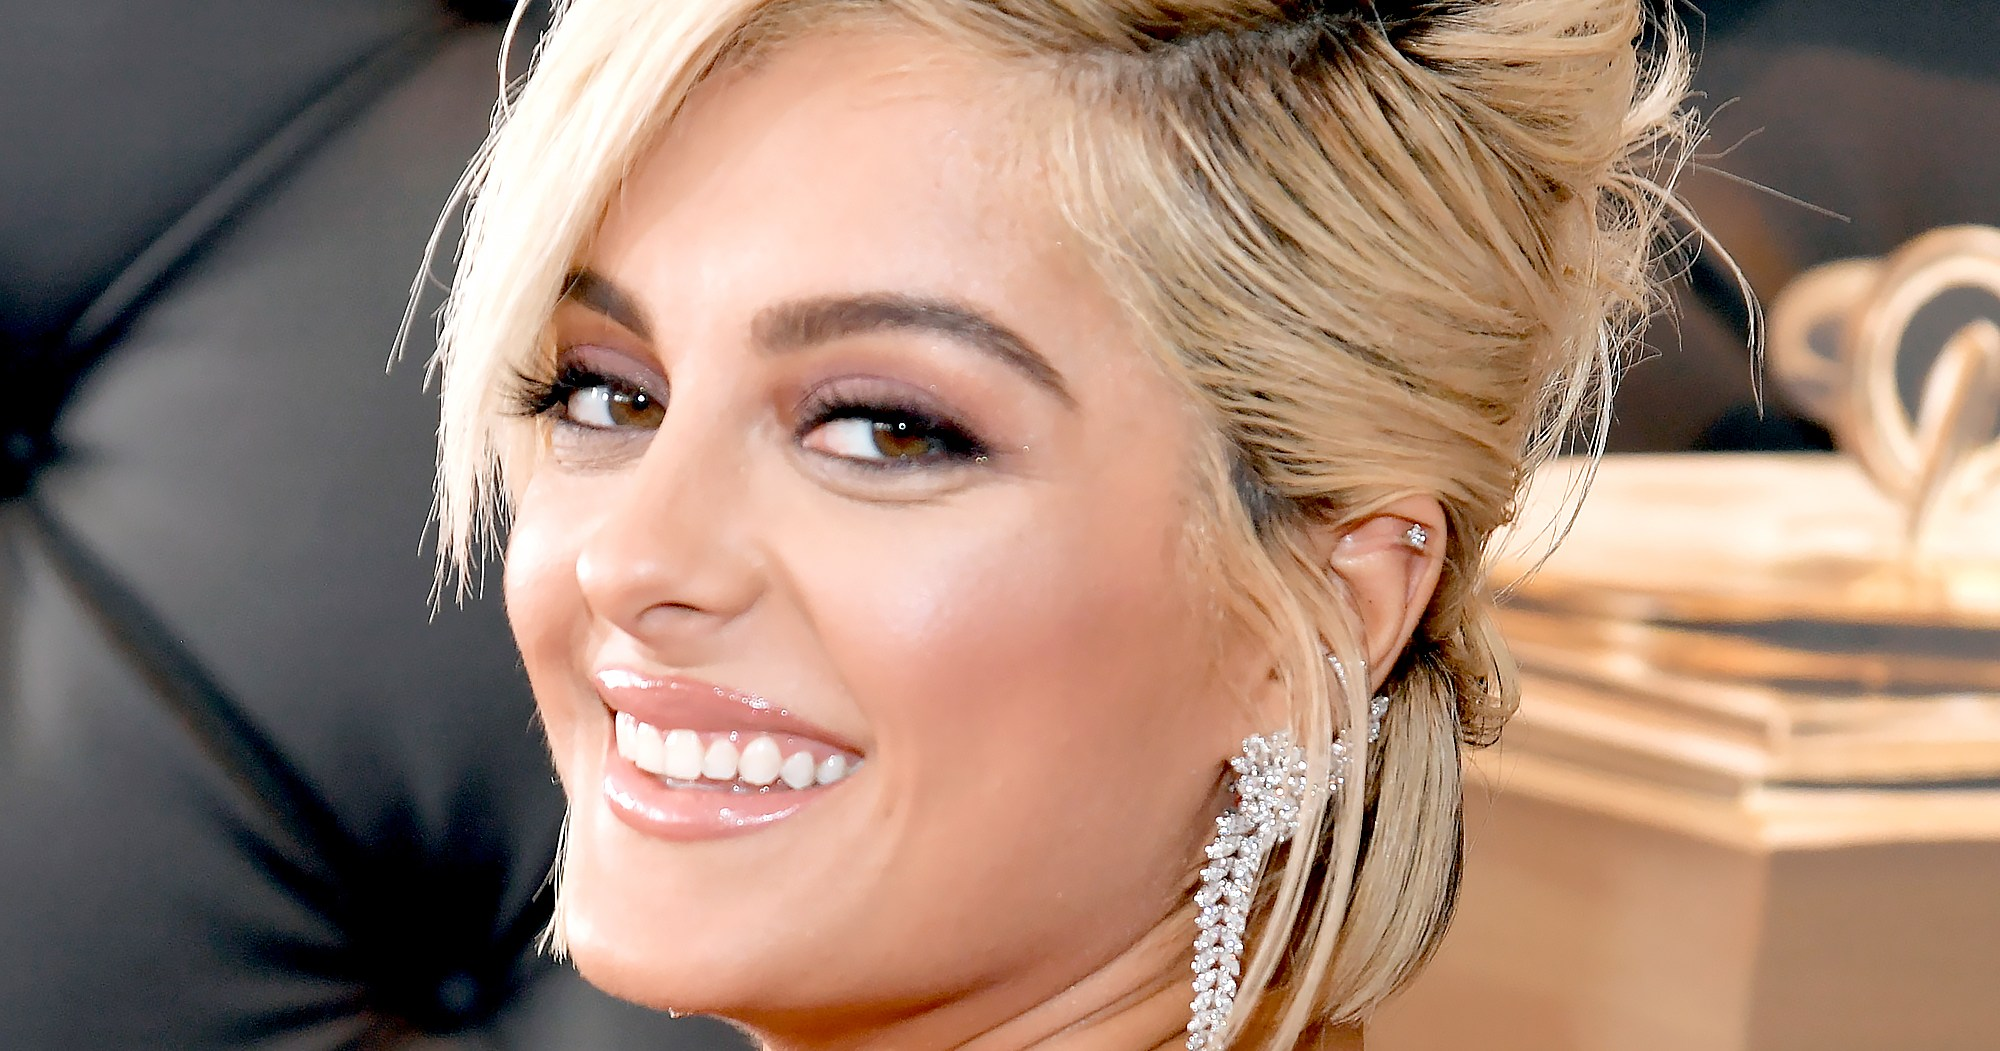 The Wildest Hair and Makeup Looks at the 2019 Grammy Awards